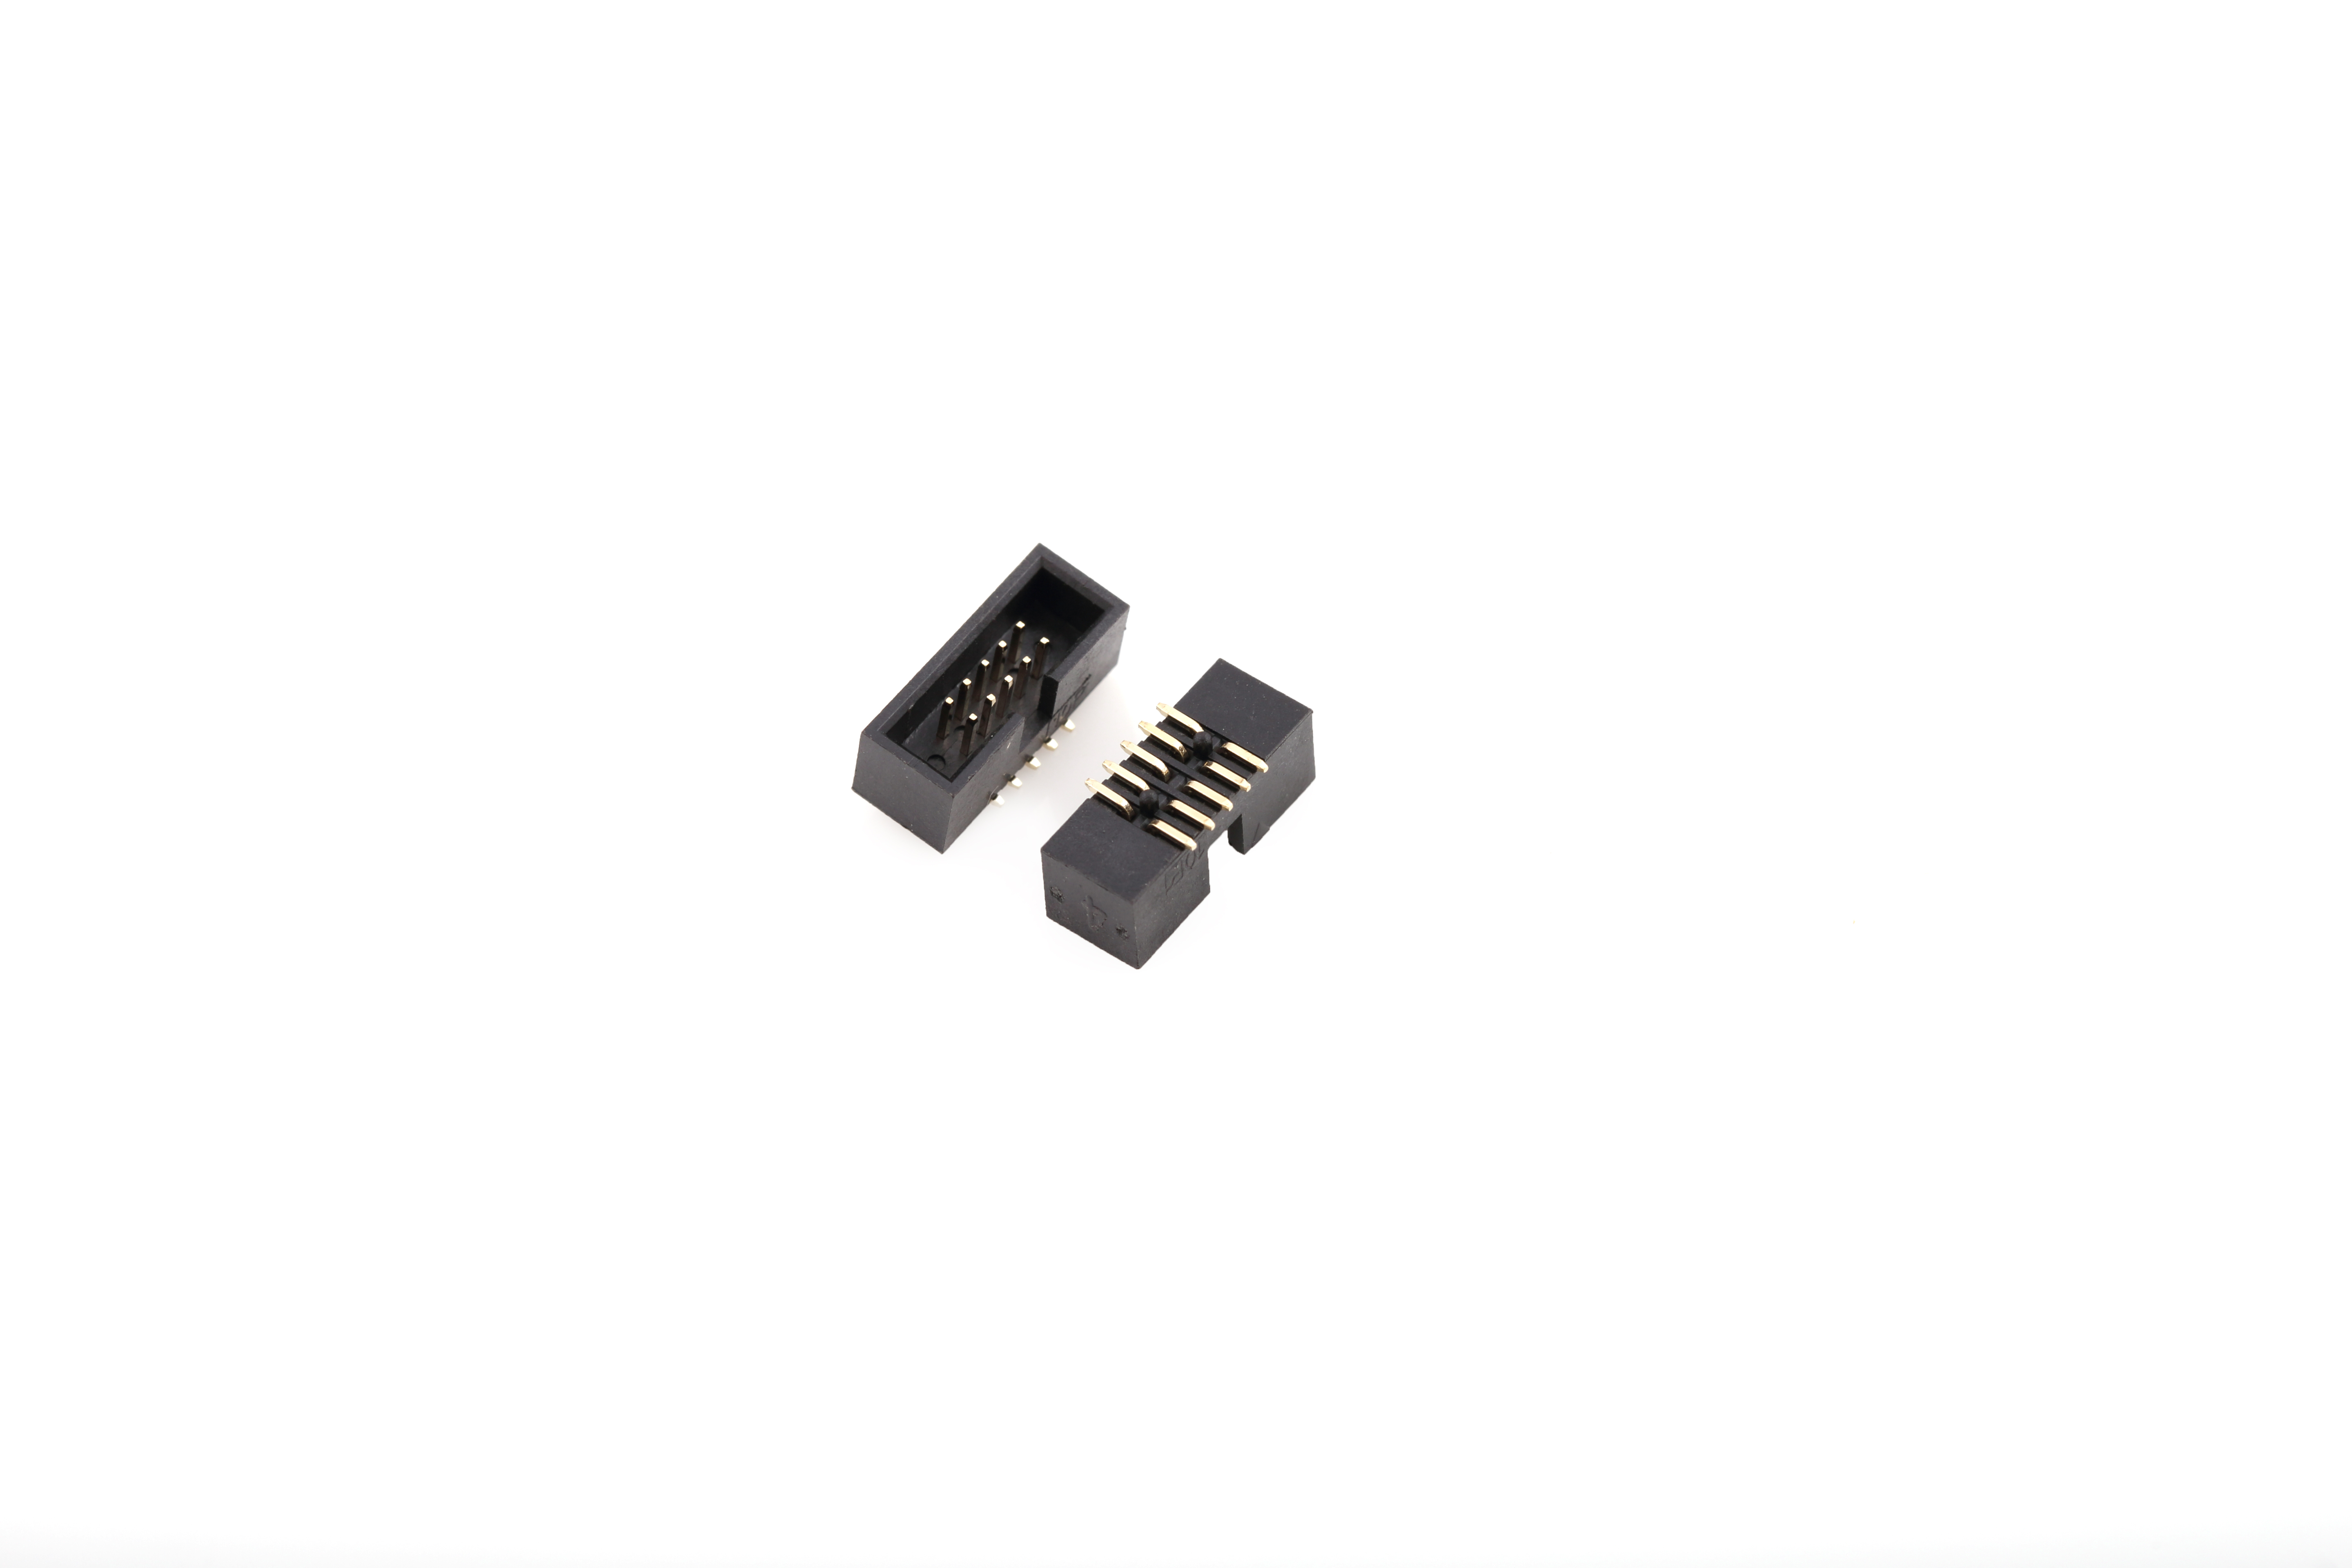 1 27 215 1 27 Pitch Box Header Double Row Surface Mount P9635s